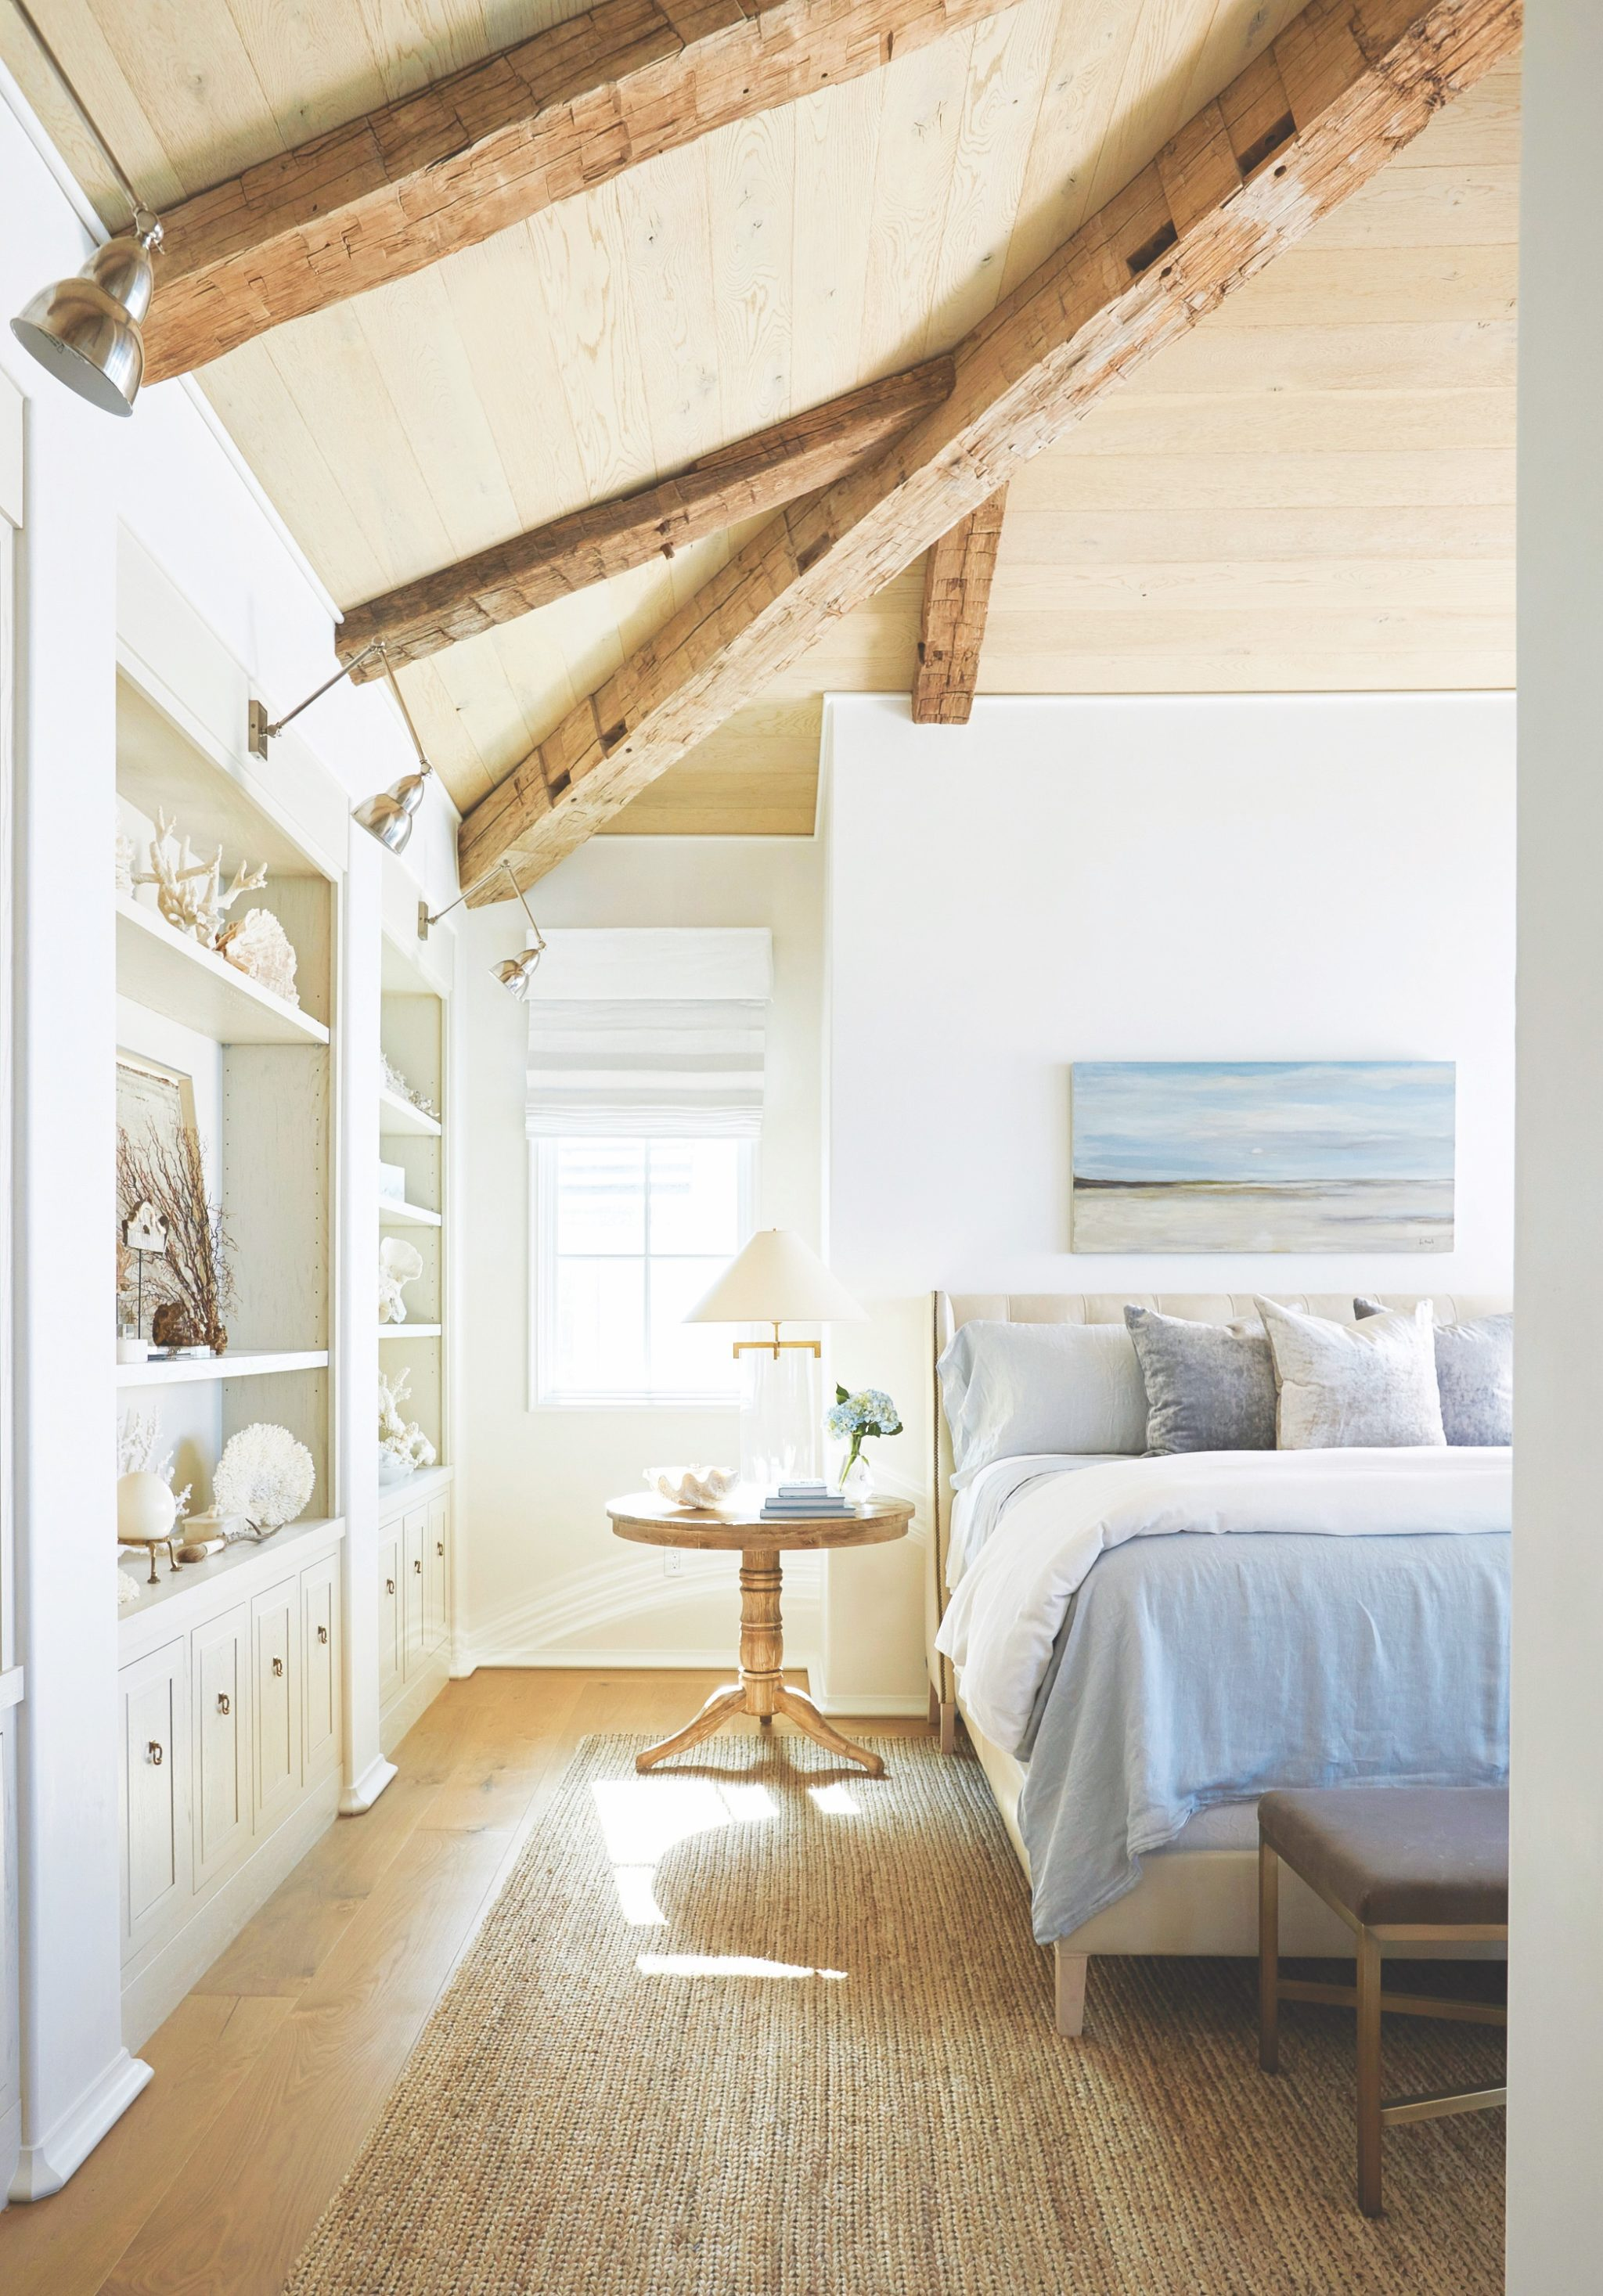 A serene bedroom oasis in The Retreat neighborhood of Blue Mountain Beach, Florida, designed by Holly Shipman